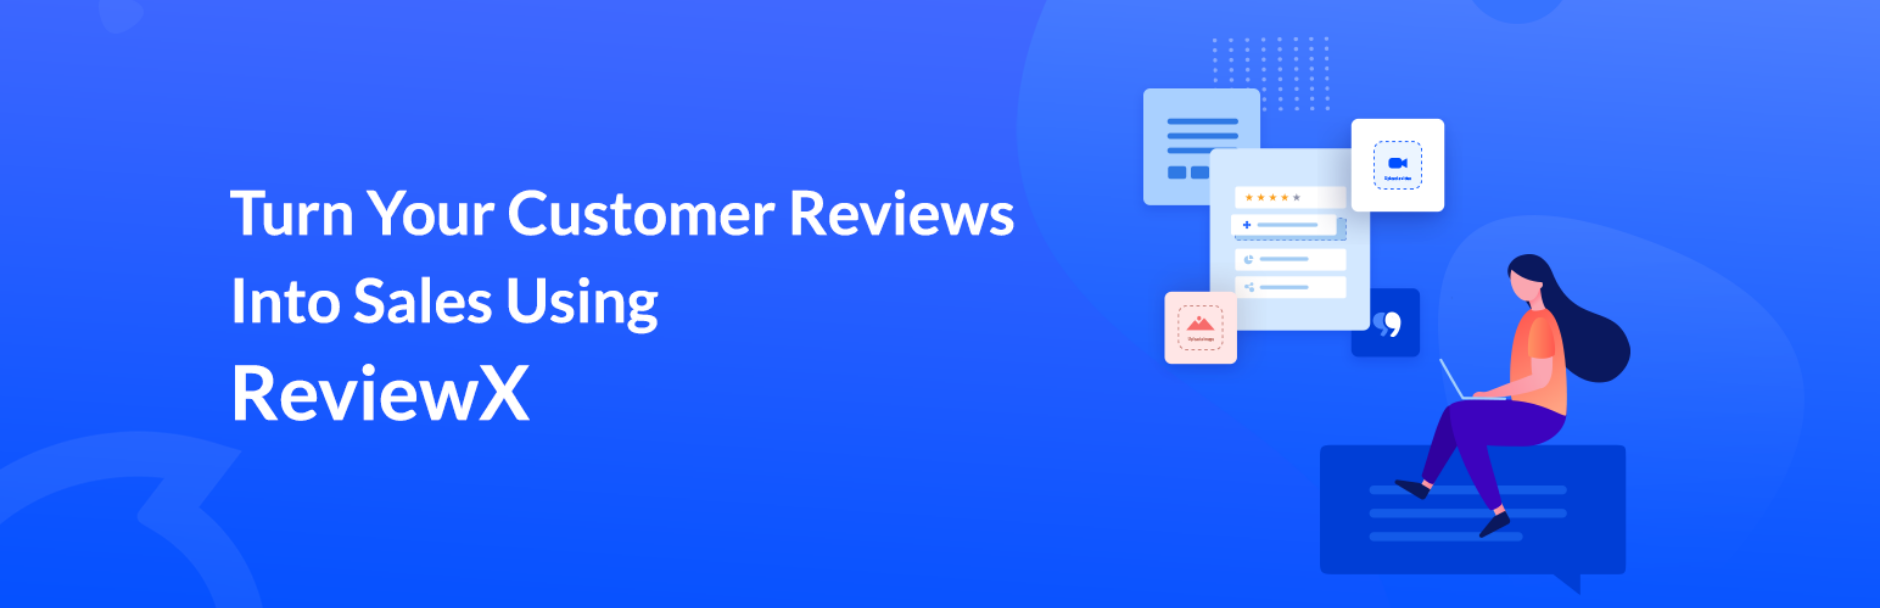 ReviewX Pro 1.1.7 – Accelerate WooCommerce Sales With ReviewX